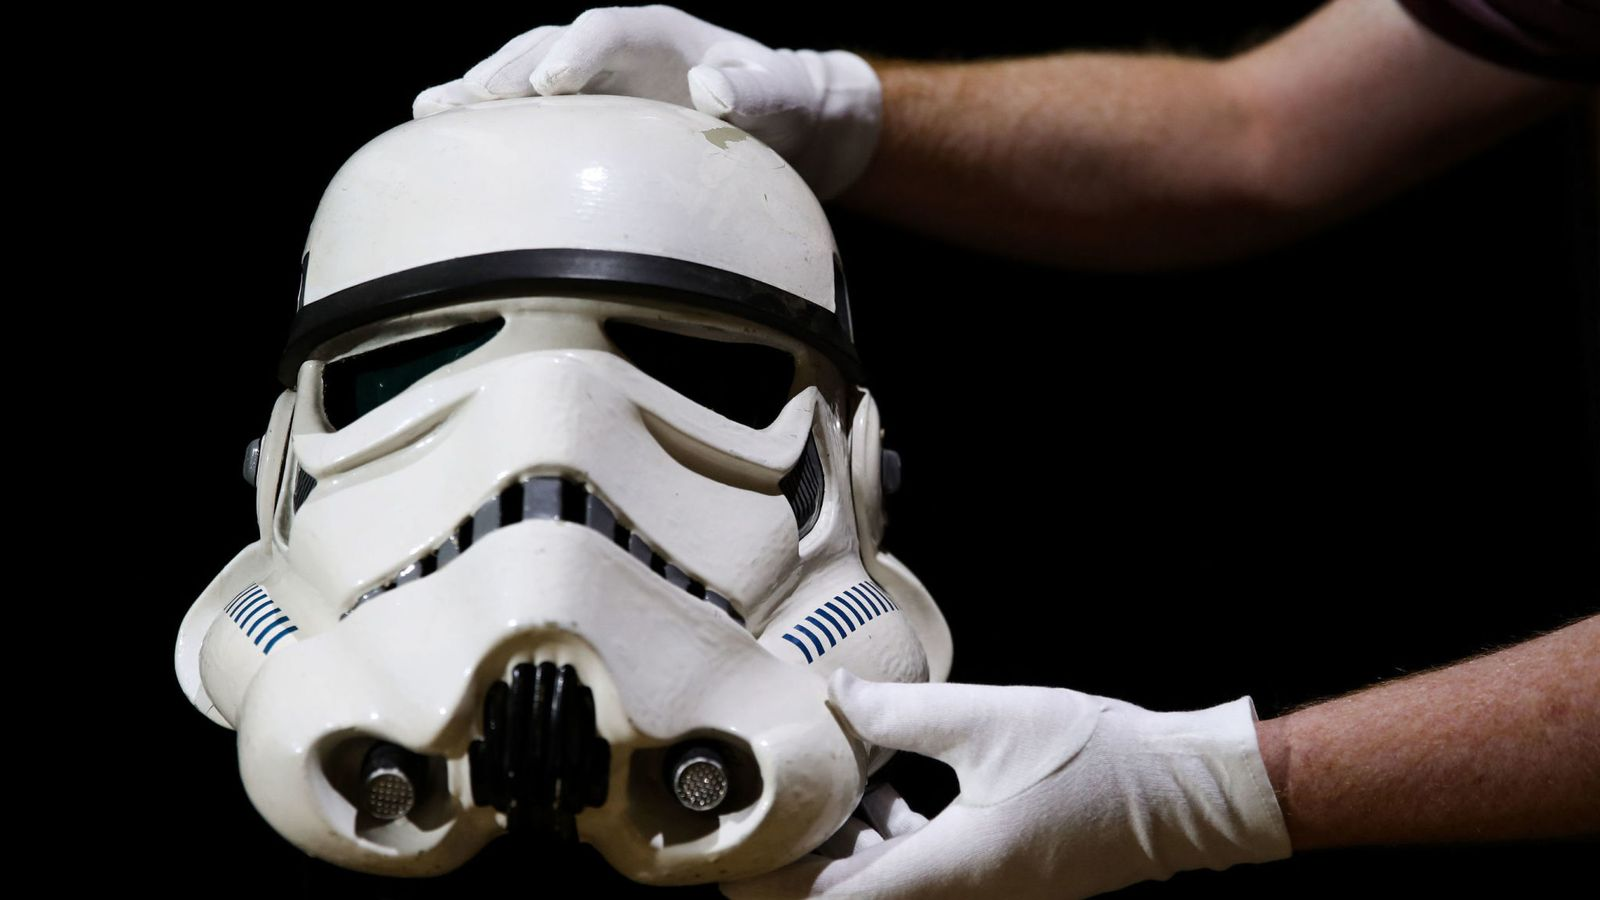 A screen matched Tantive IV Stormtrooper helmet from 1977 film Star Wars: A New Hope